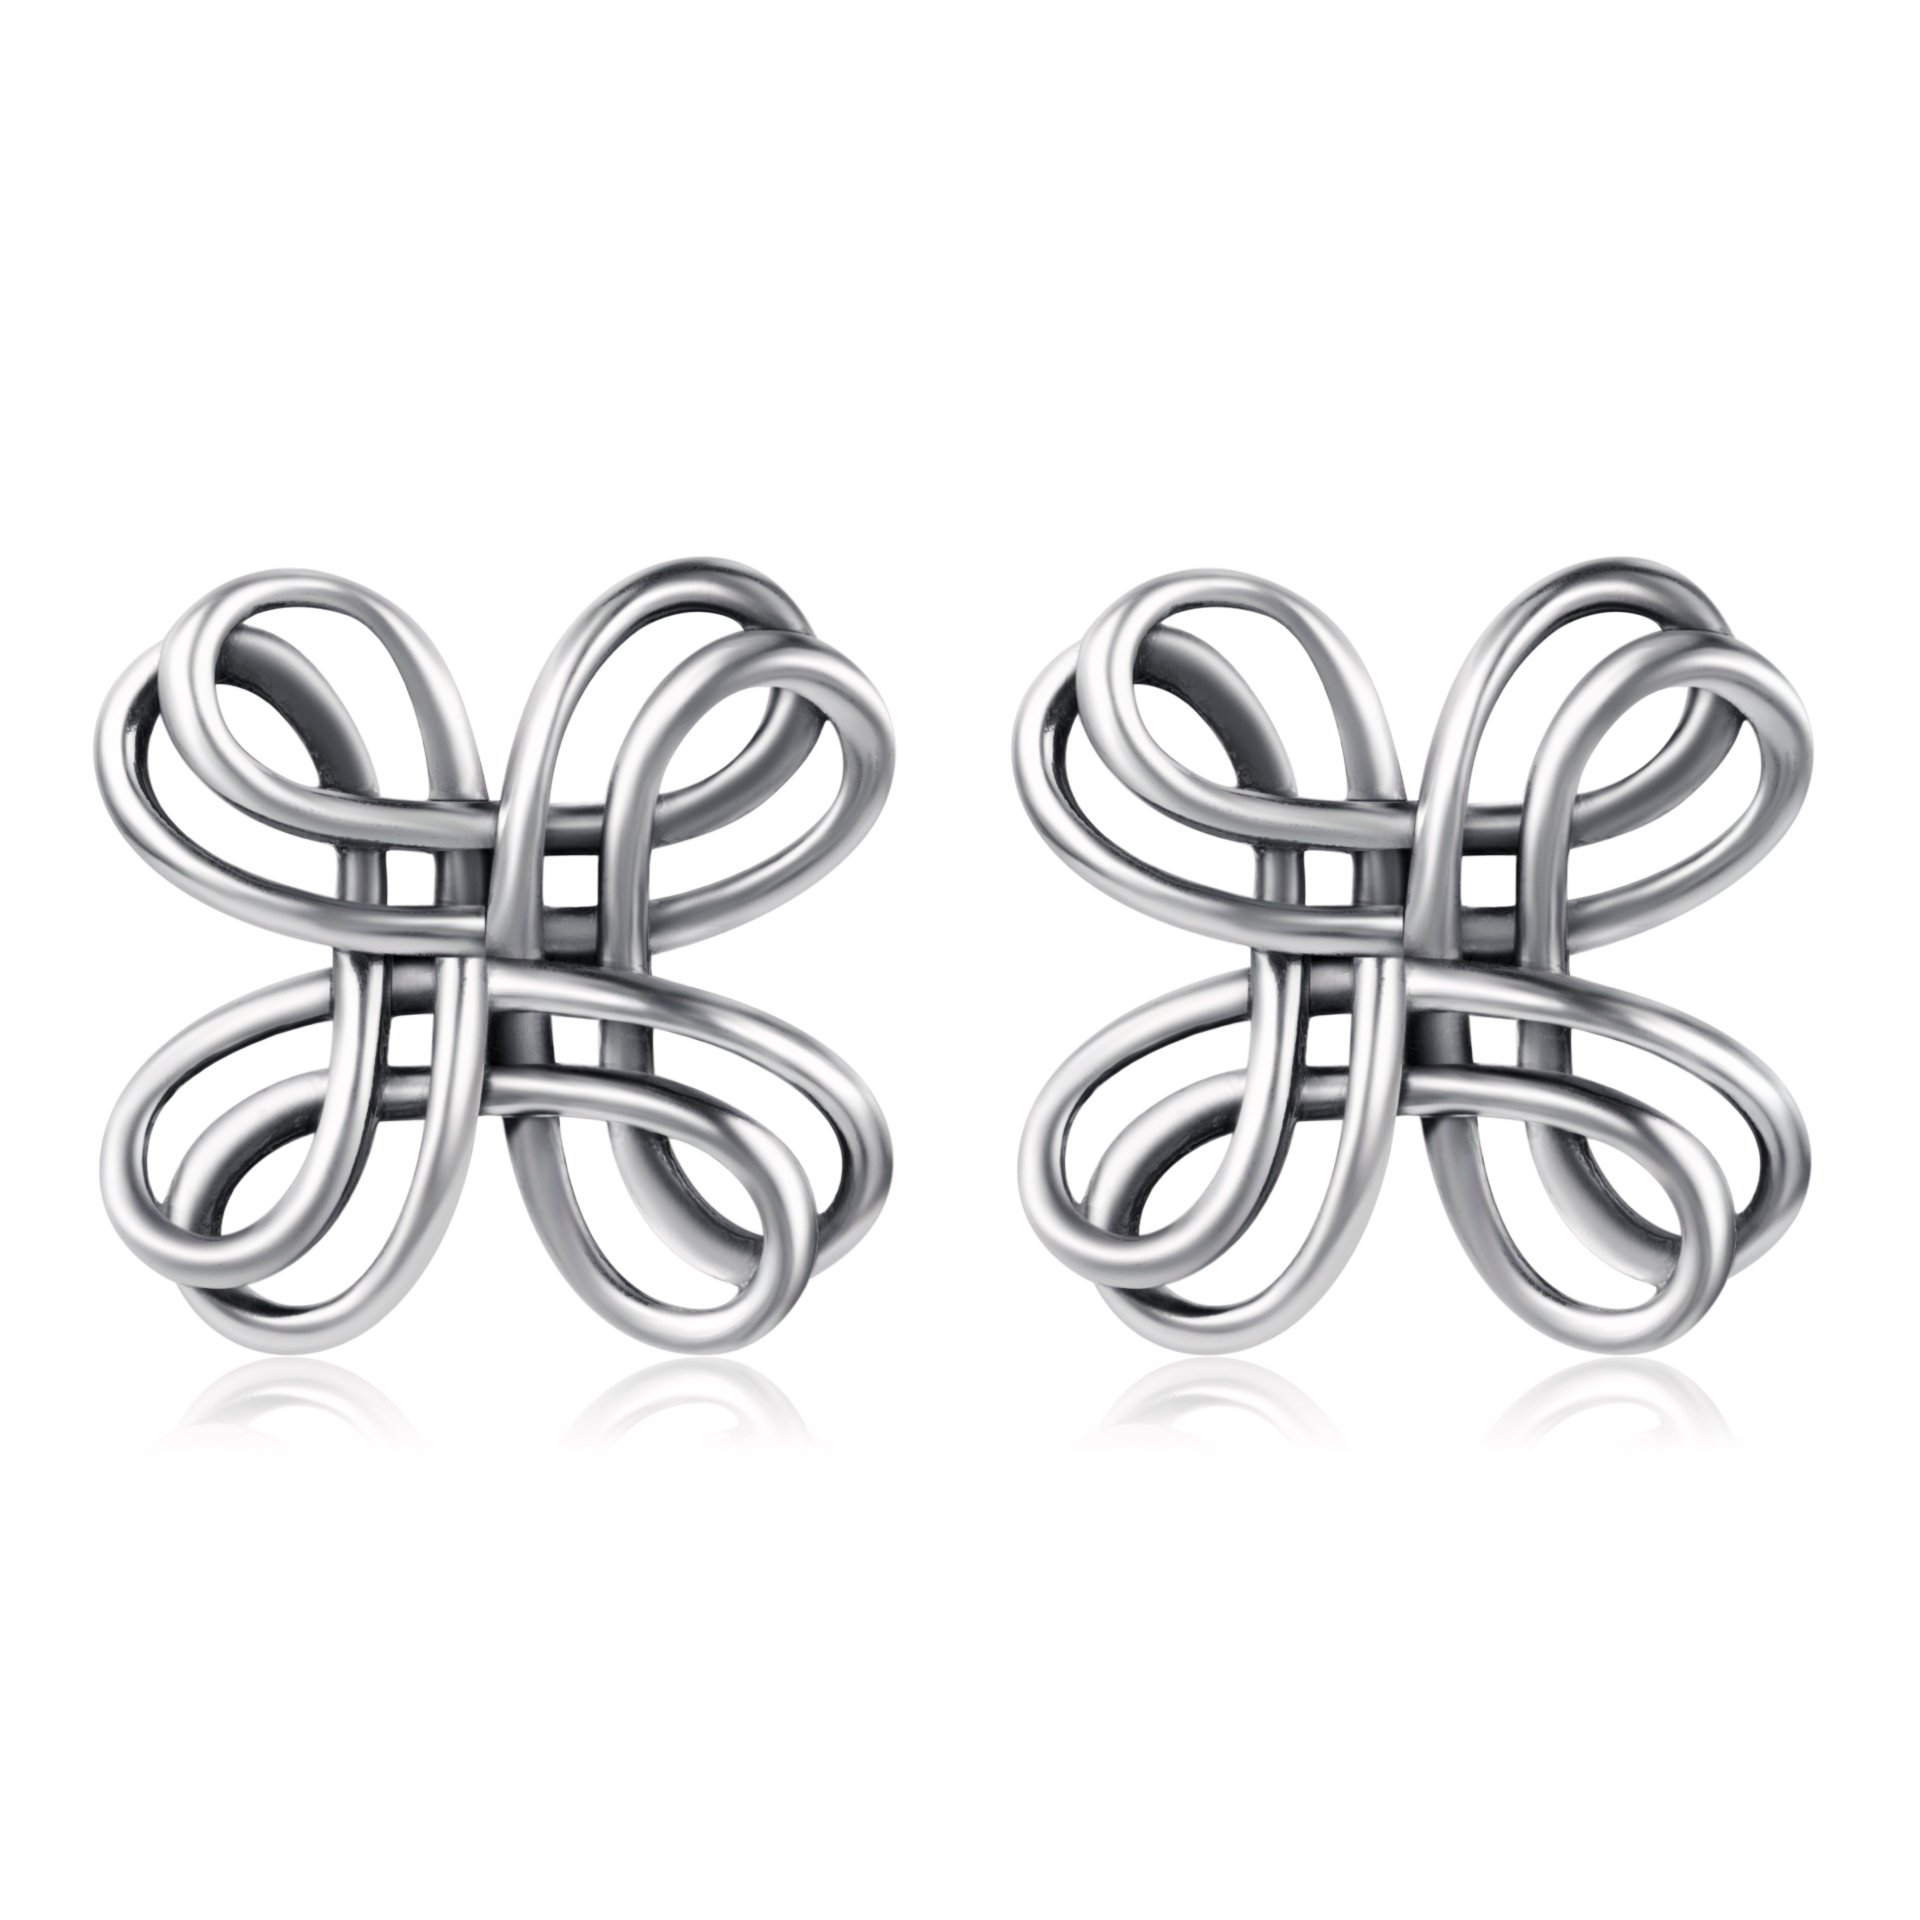 Celtic Knot Studs 925 Sterling Silver Oxidation Polished Celtic Knot Cross Bow Stud Earrings (Celtic knot earrings 1)